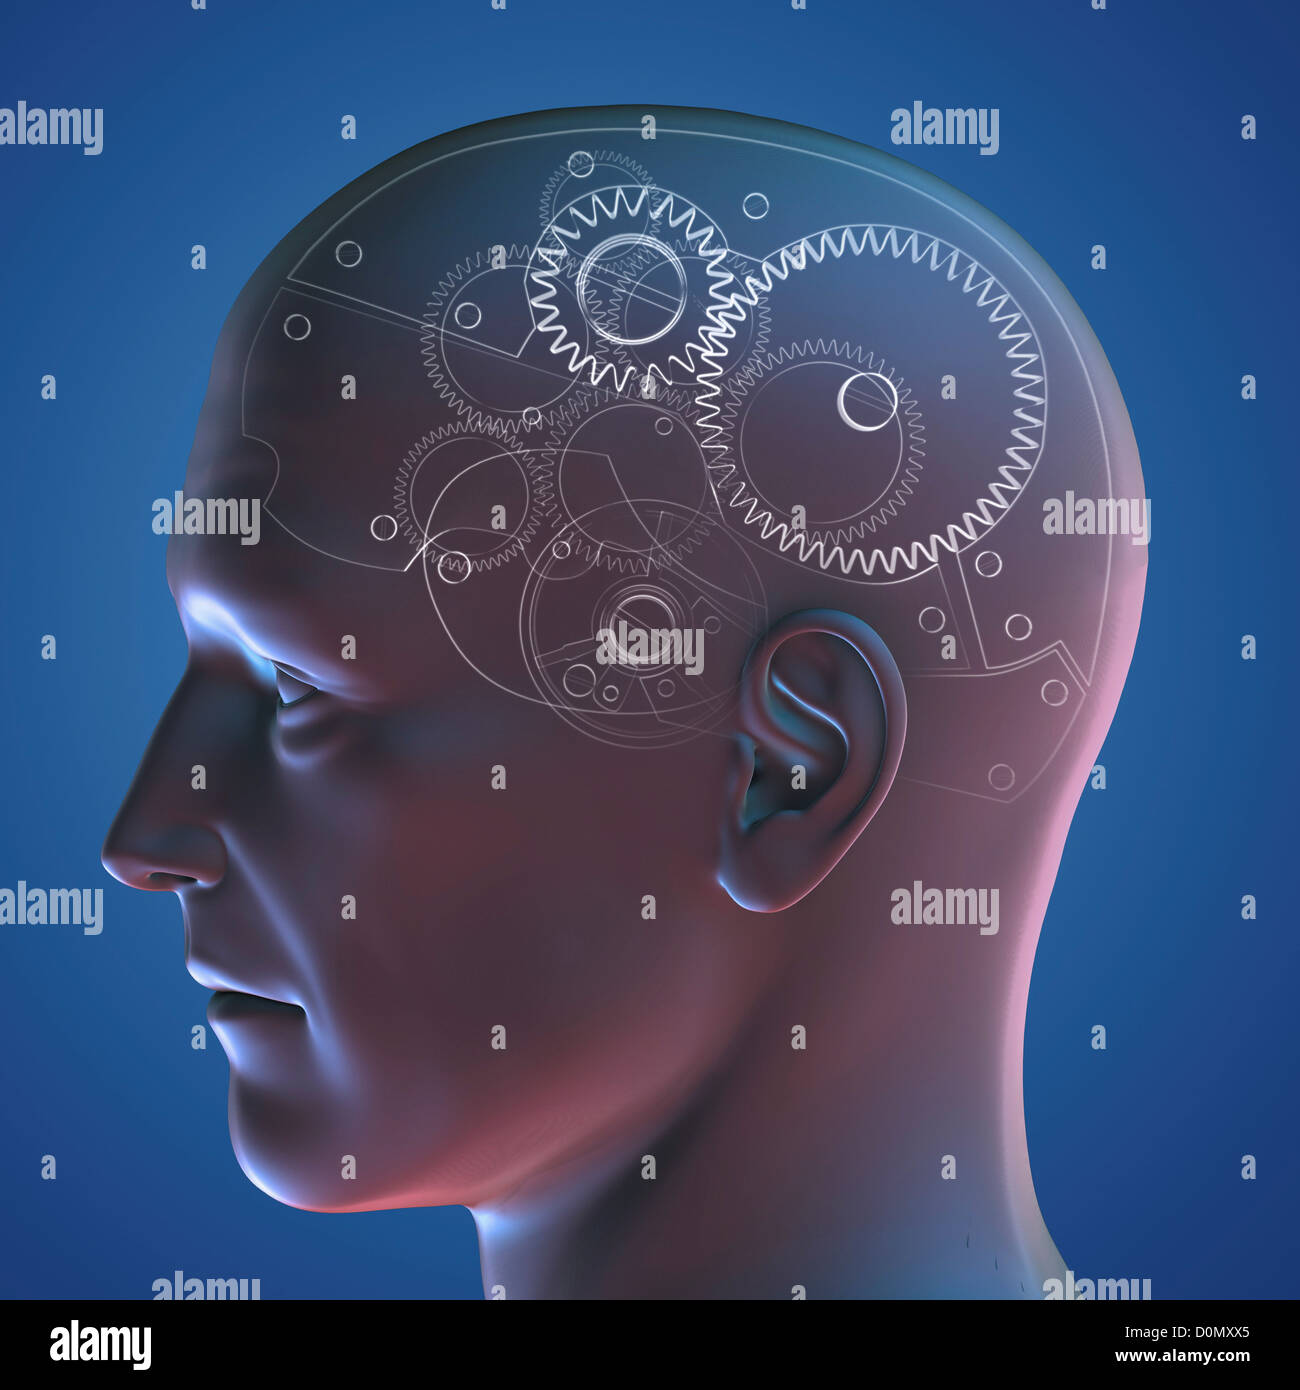 Anatomical model of a human head representing the human mind as a gear system. Stock Photo